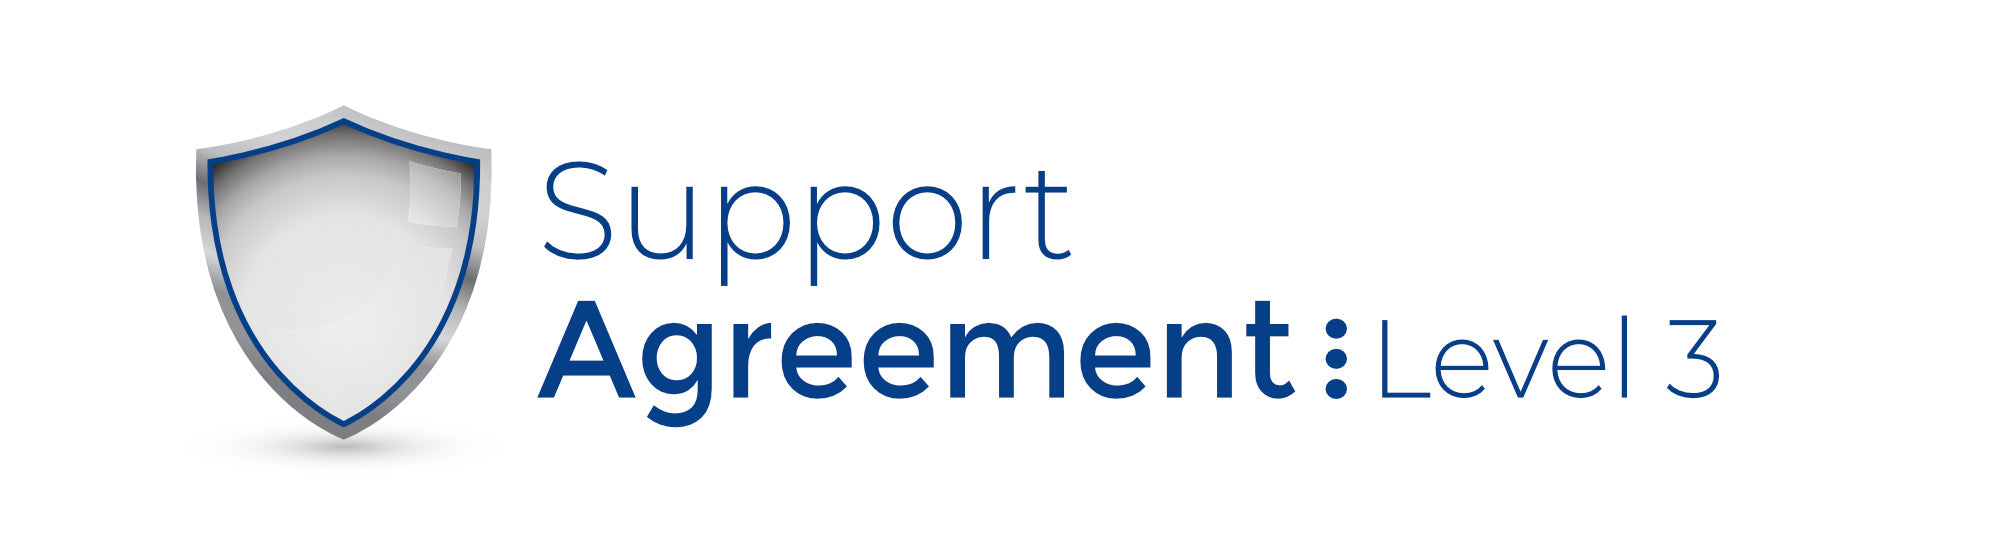 Support Agreement Level 3 - (48 Programming Changes Per Year) - Commtel Shop